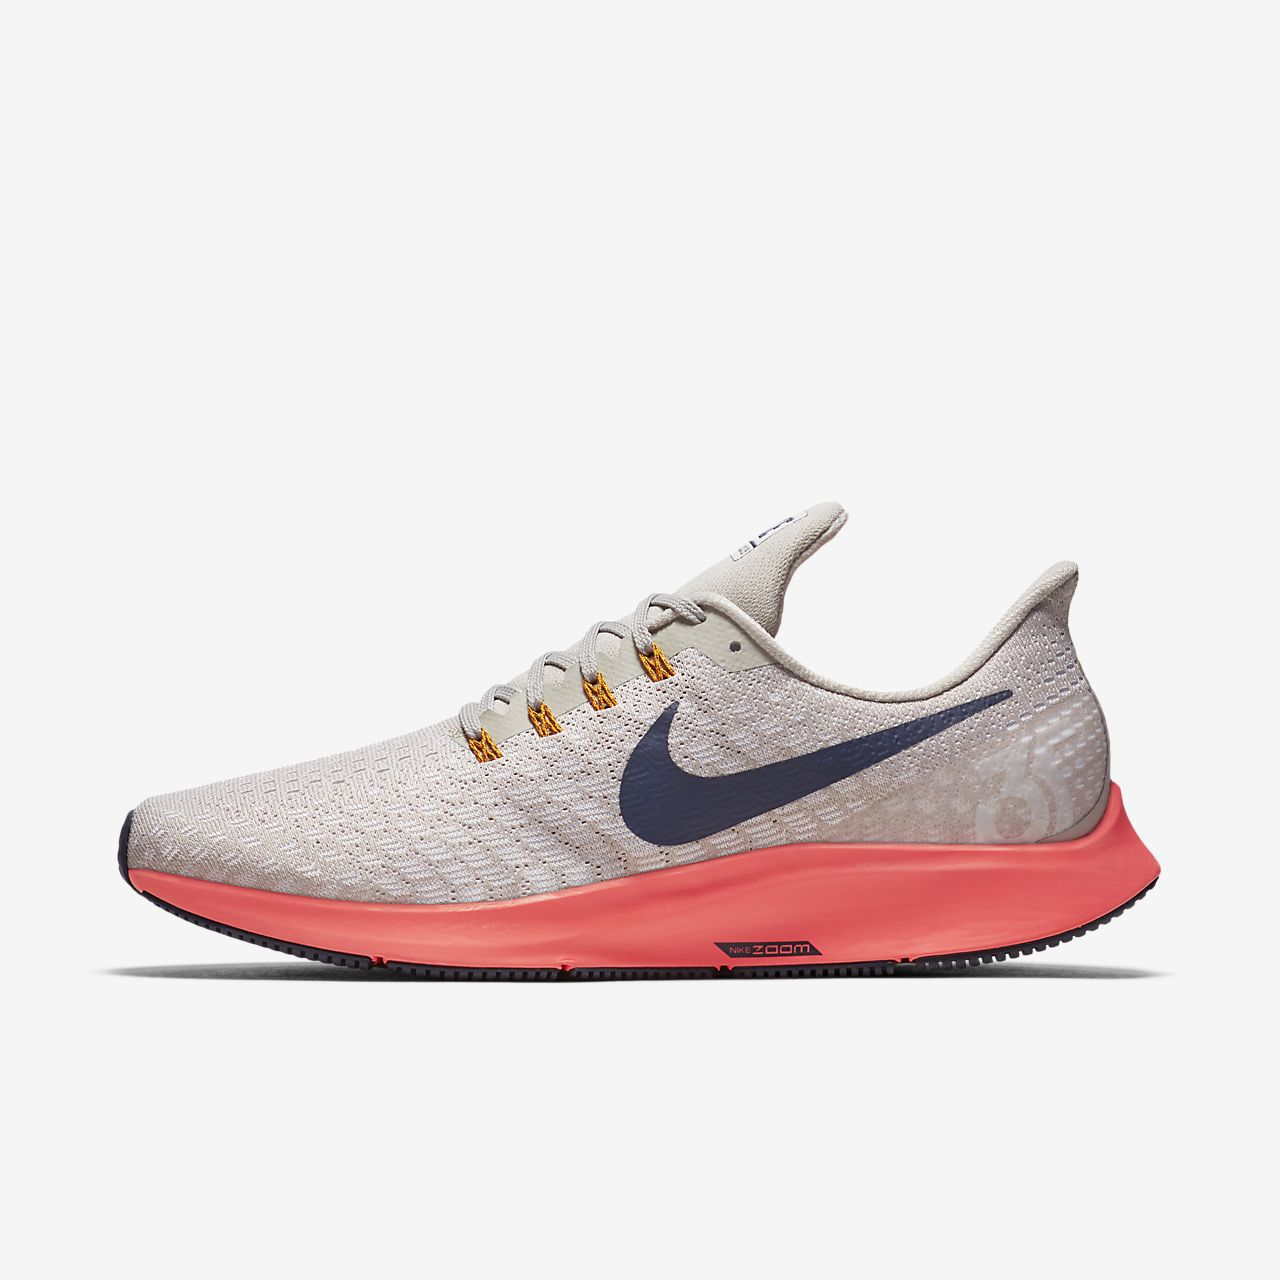 online shop hot new products 2018 sneakers Nike Air Zoom Pegasus 35 Men's Running Shoe